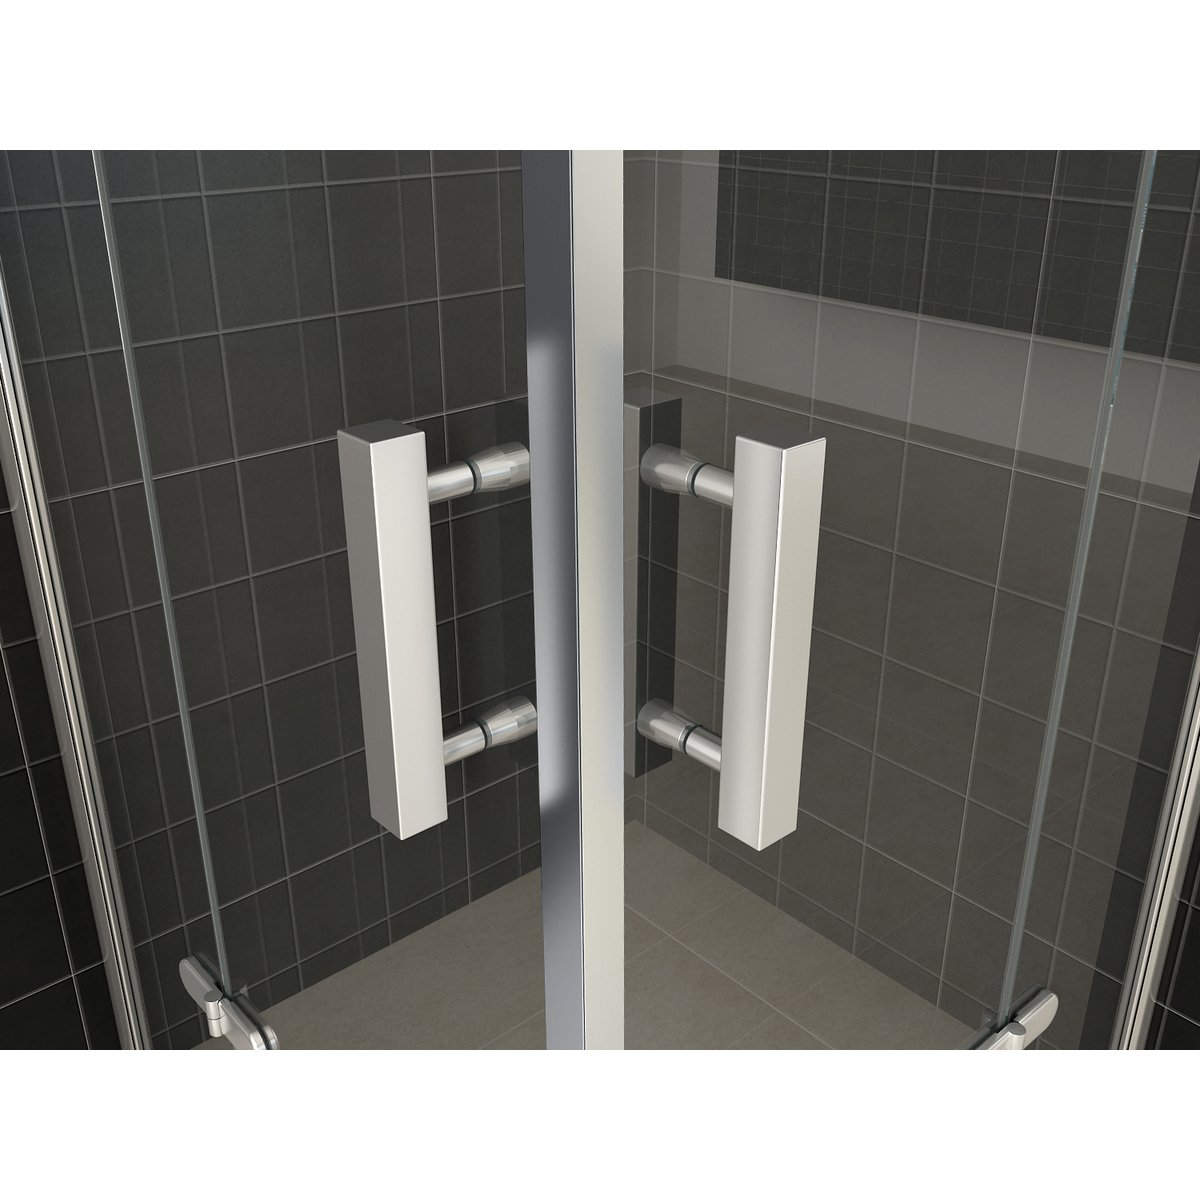 praya cabine de douche acc s d 39 angle 90x90x200cm 2 portes pivotantes profil chrome et vitre nano. Black Bedroom Furniture Sets. Home Design Ideas